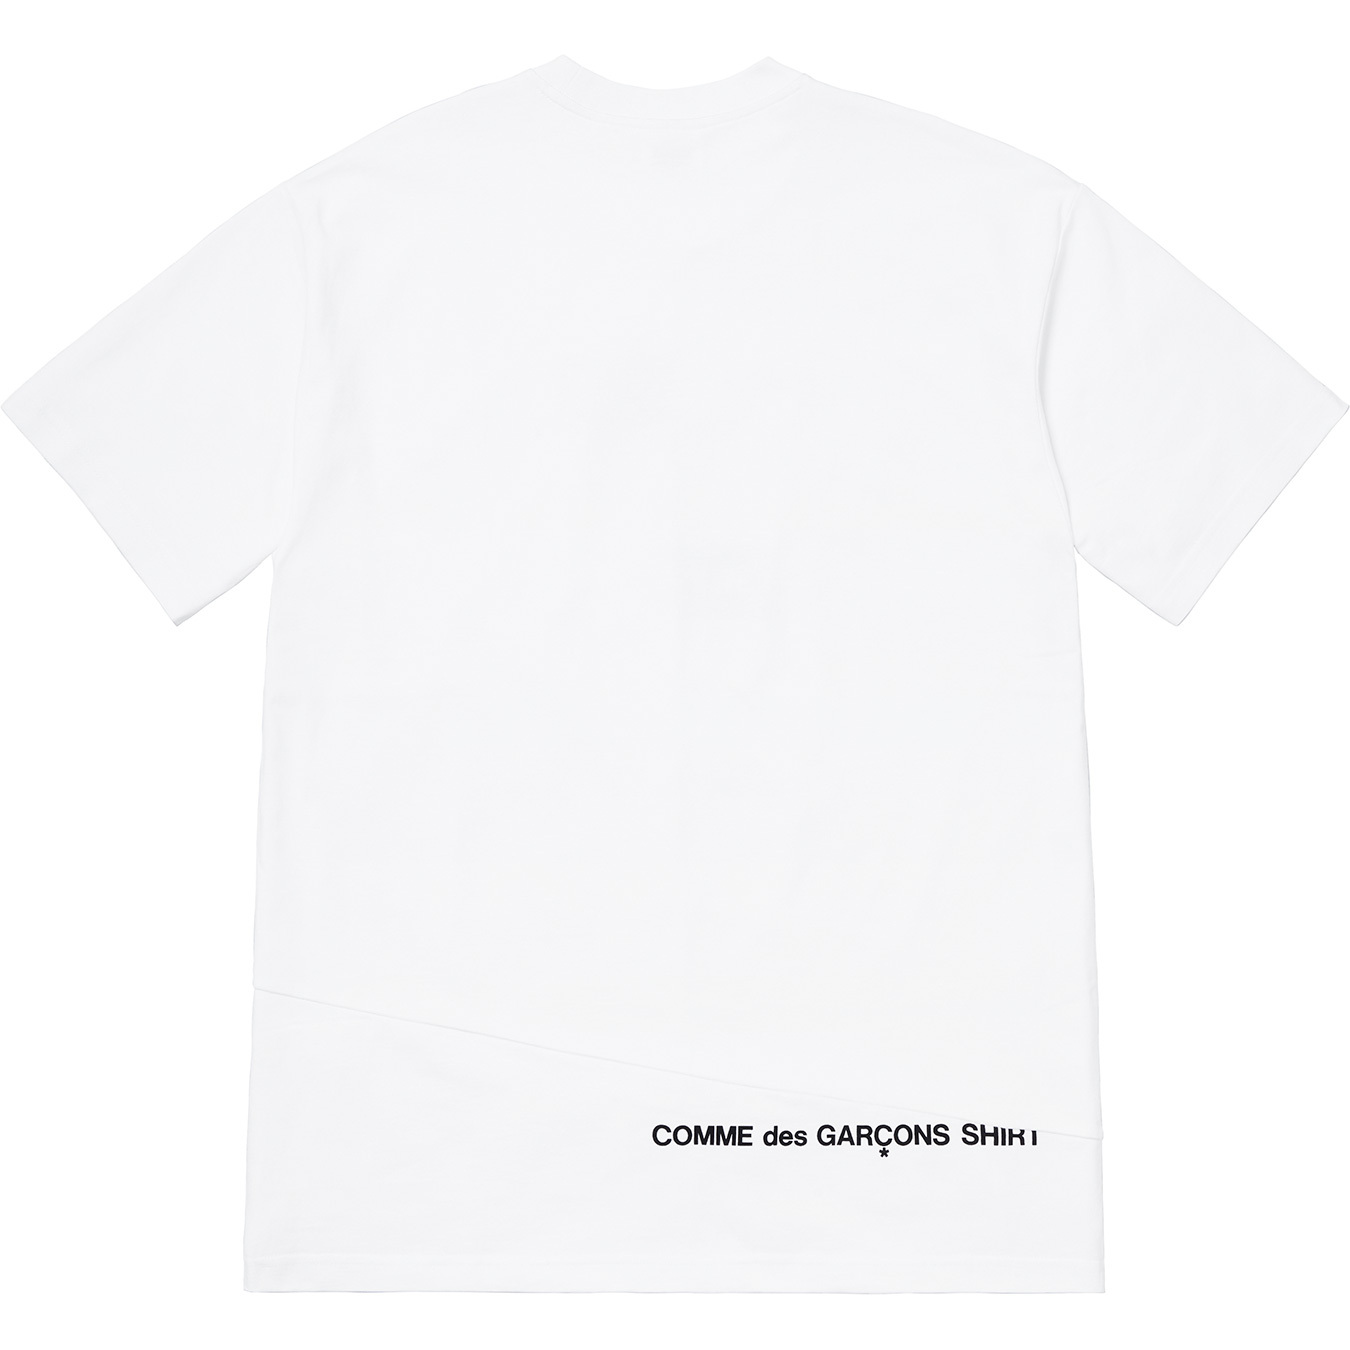 supreme-comme-des-garcons-shirt-split-box-logo-tee-18aw-collaboration-release-20180915-week4